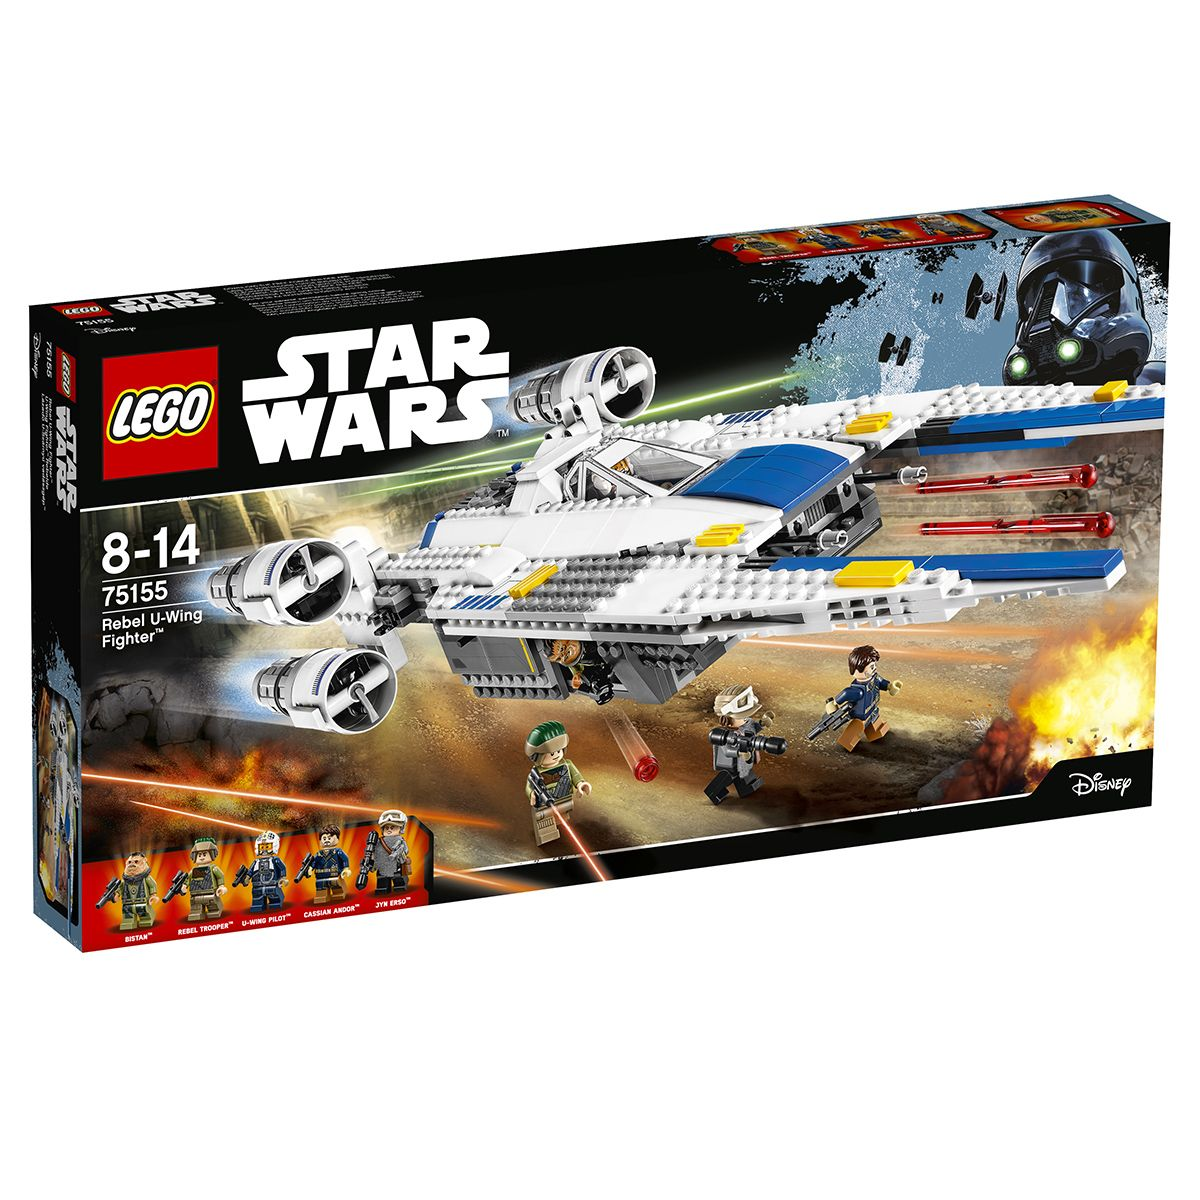 Wars Robots Lego Rebel Sciences Star Et Fictions Uwing Fighter cqALS35R4j